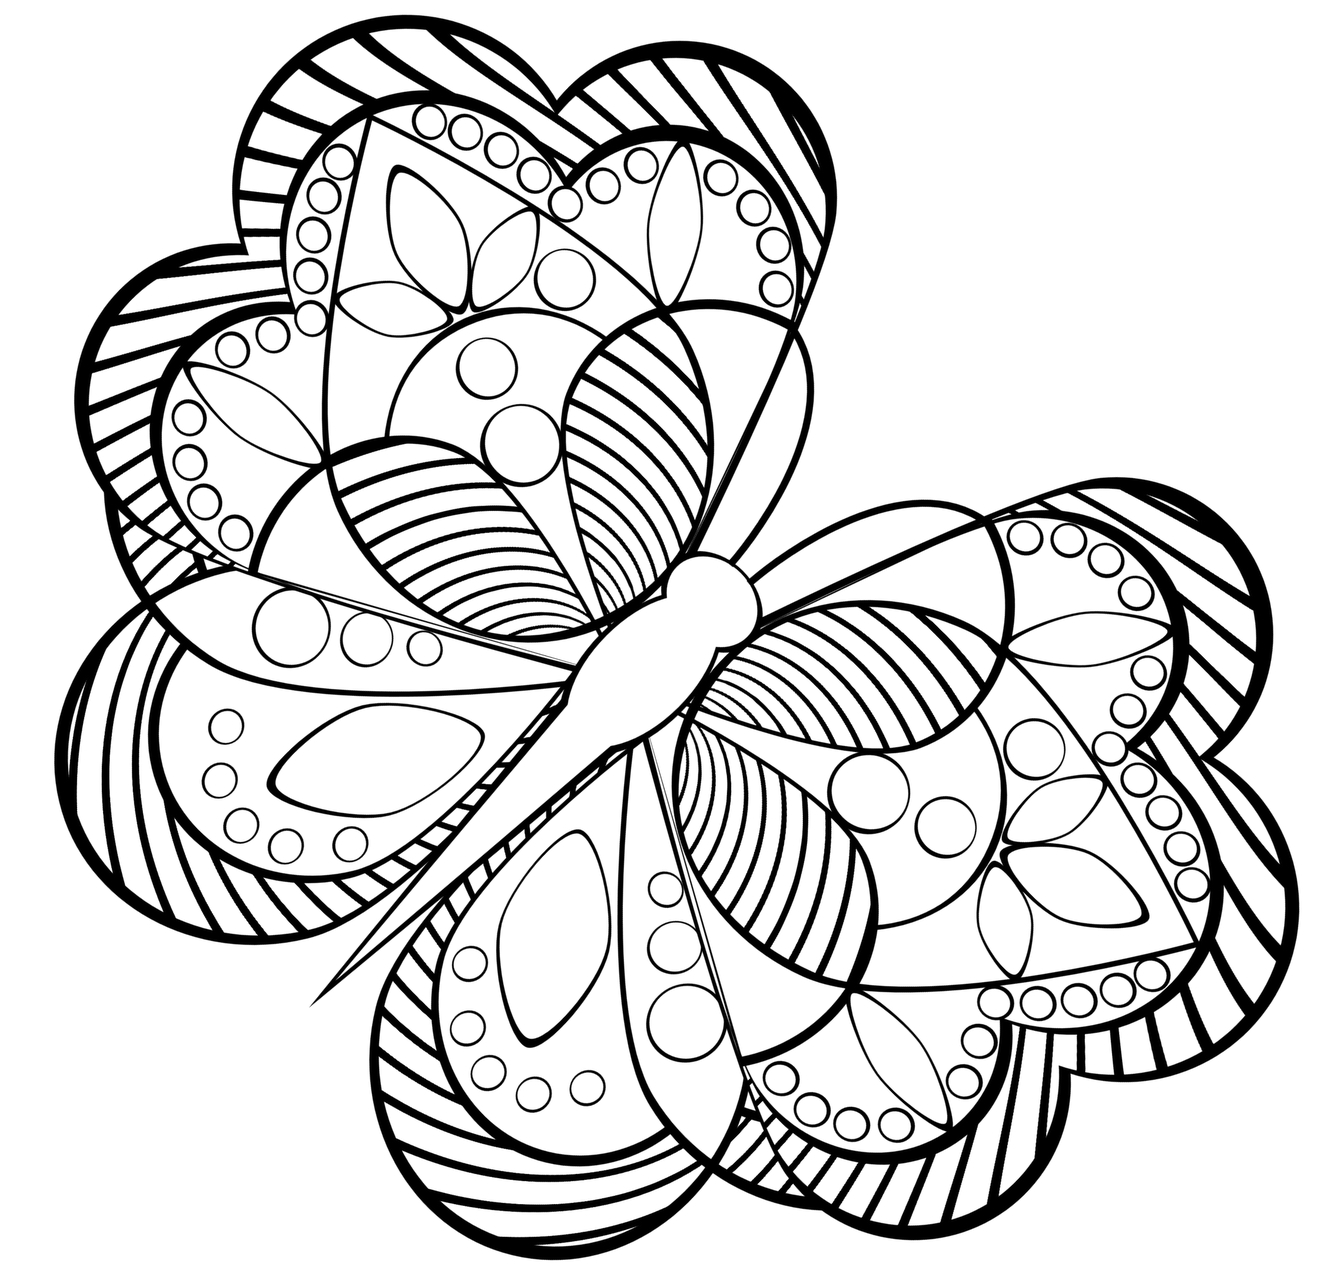 therapeutic coloring pages for children therapy coloring pages to download and print for free